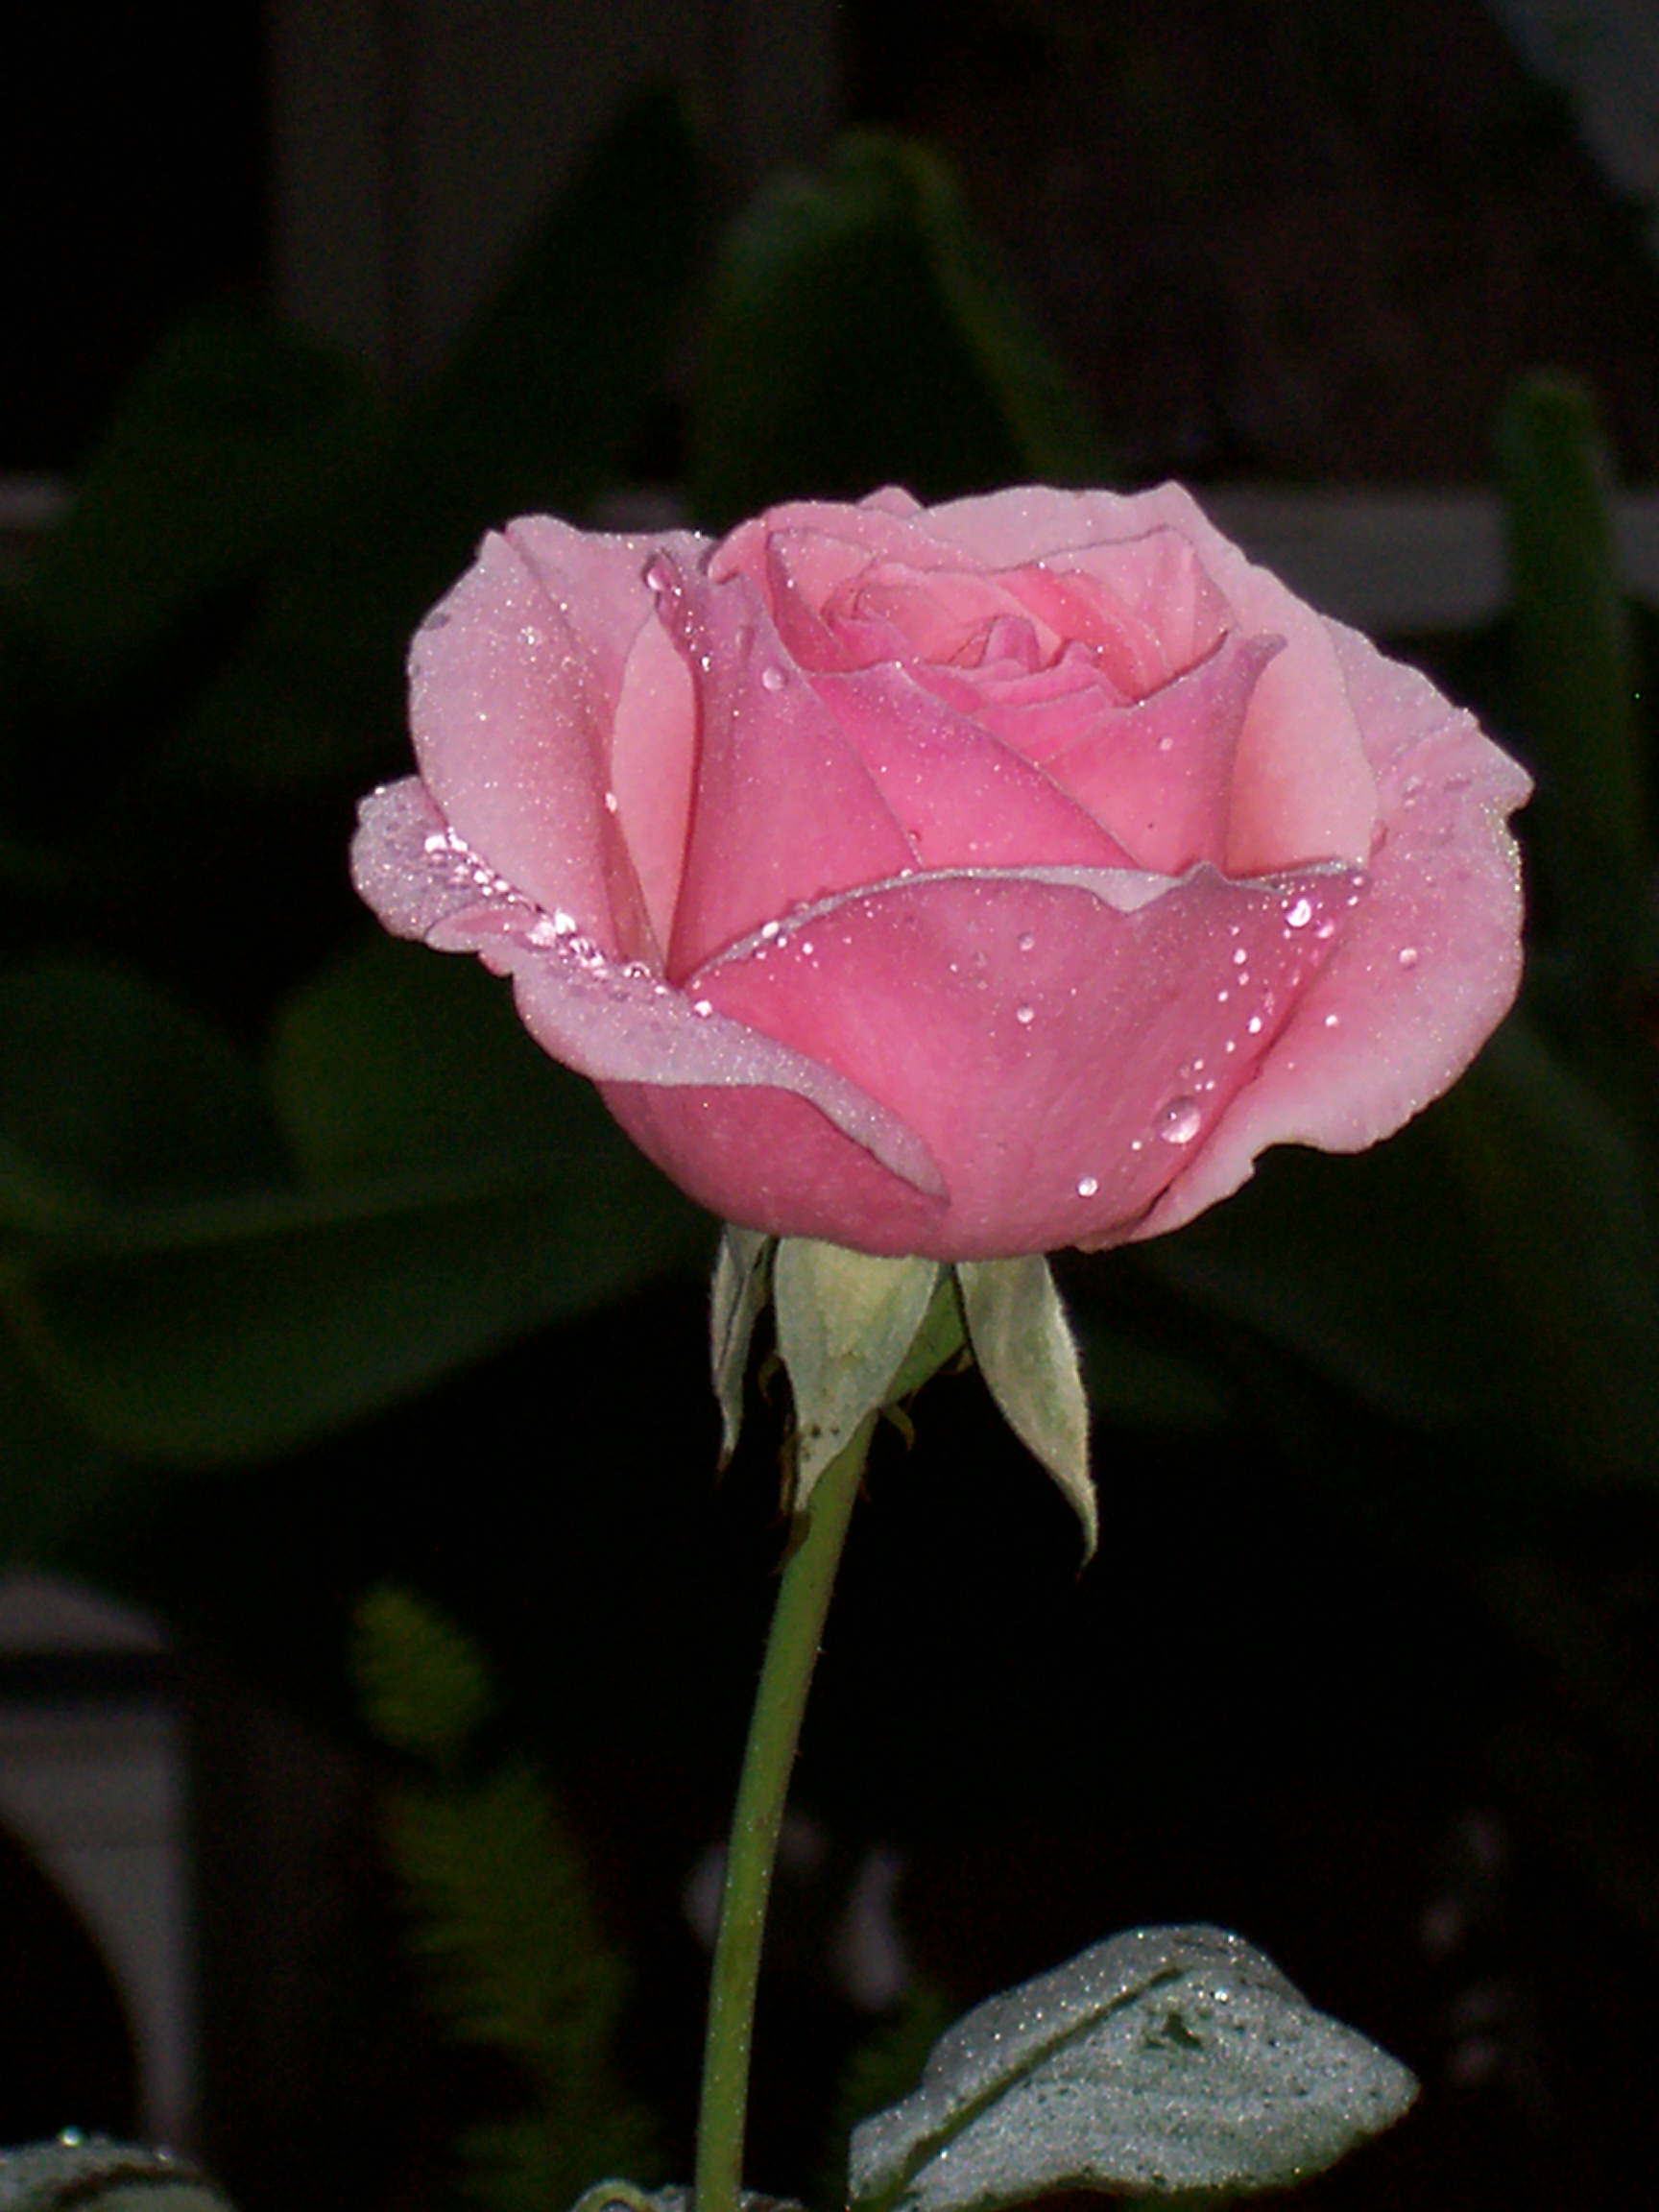 Pink rose, Pink, Plant, Romantic, Rose, HQ Photo